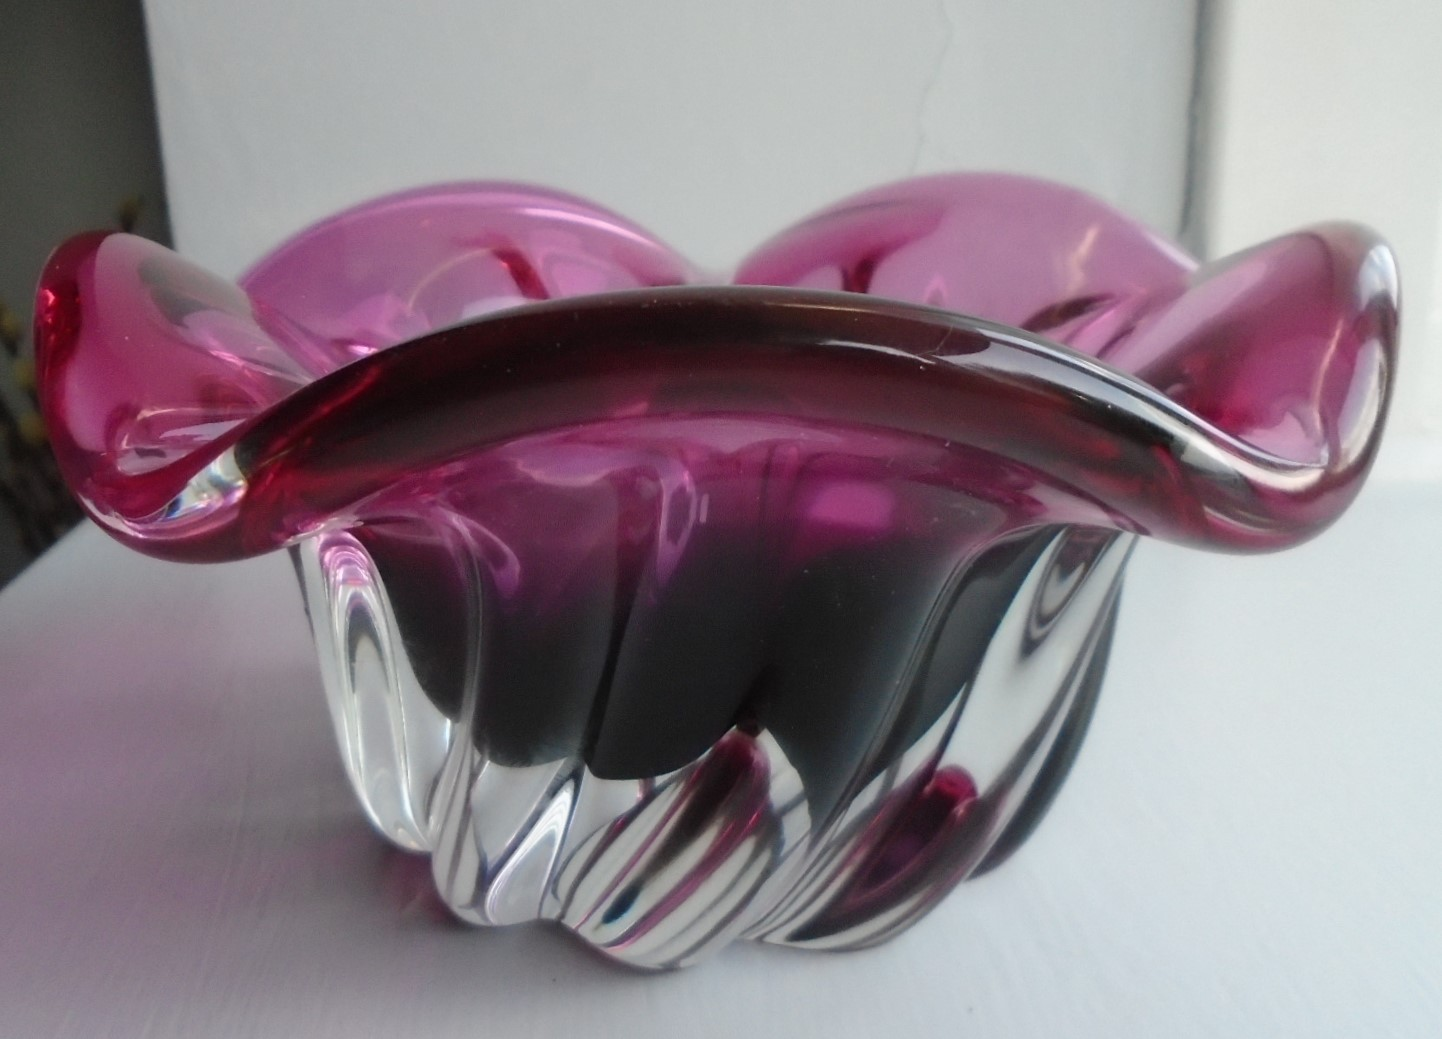 Stylish piece of 60s vintage Czech Bohemia Glass in the form of this heavy 5 petal rimmed bowl with a spiral rib decoration from Chribska and probably designed by Josef Hospodska.